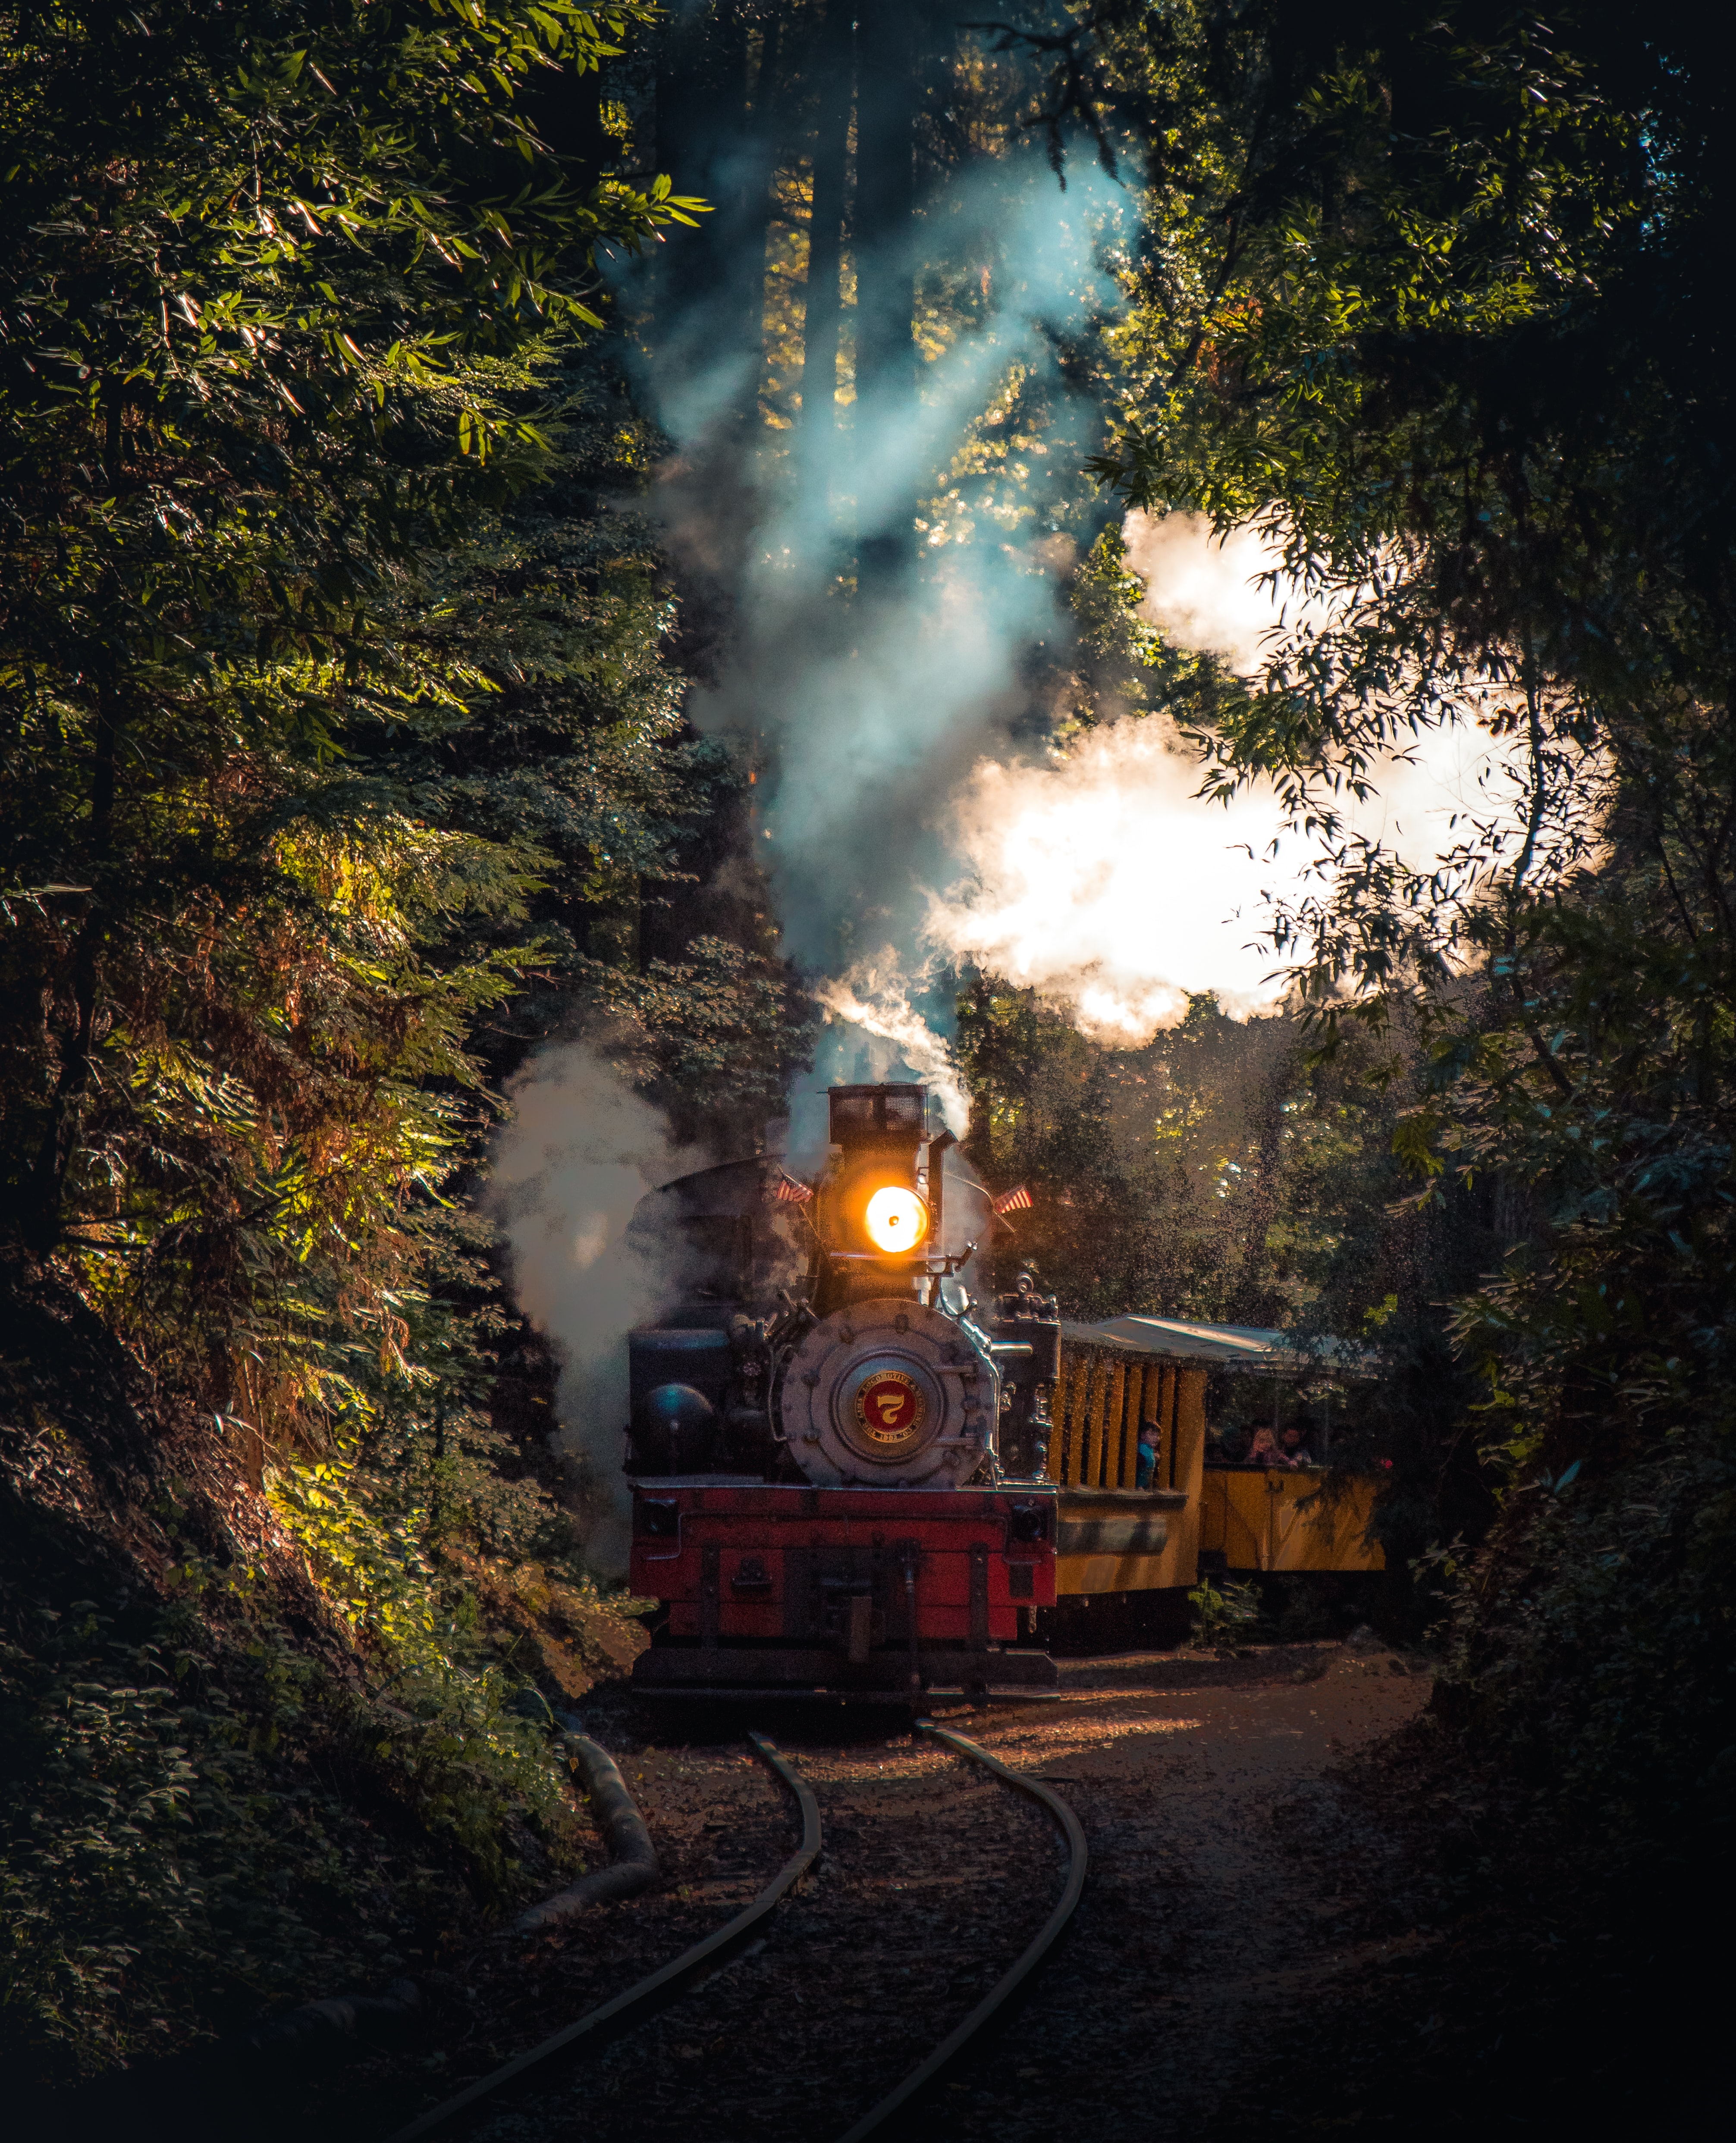 gray and red train running on rail in between trees at daytime